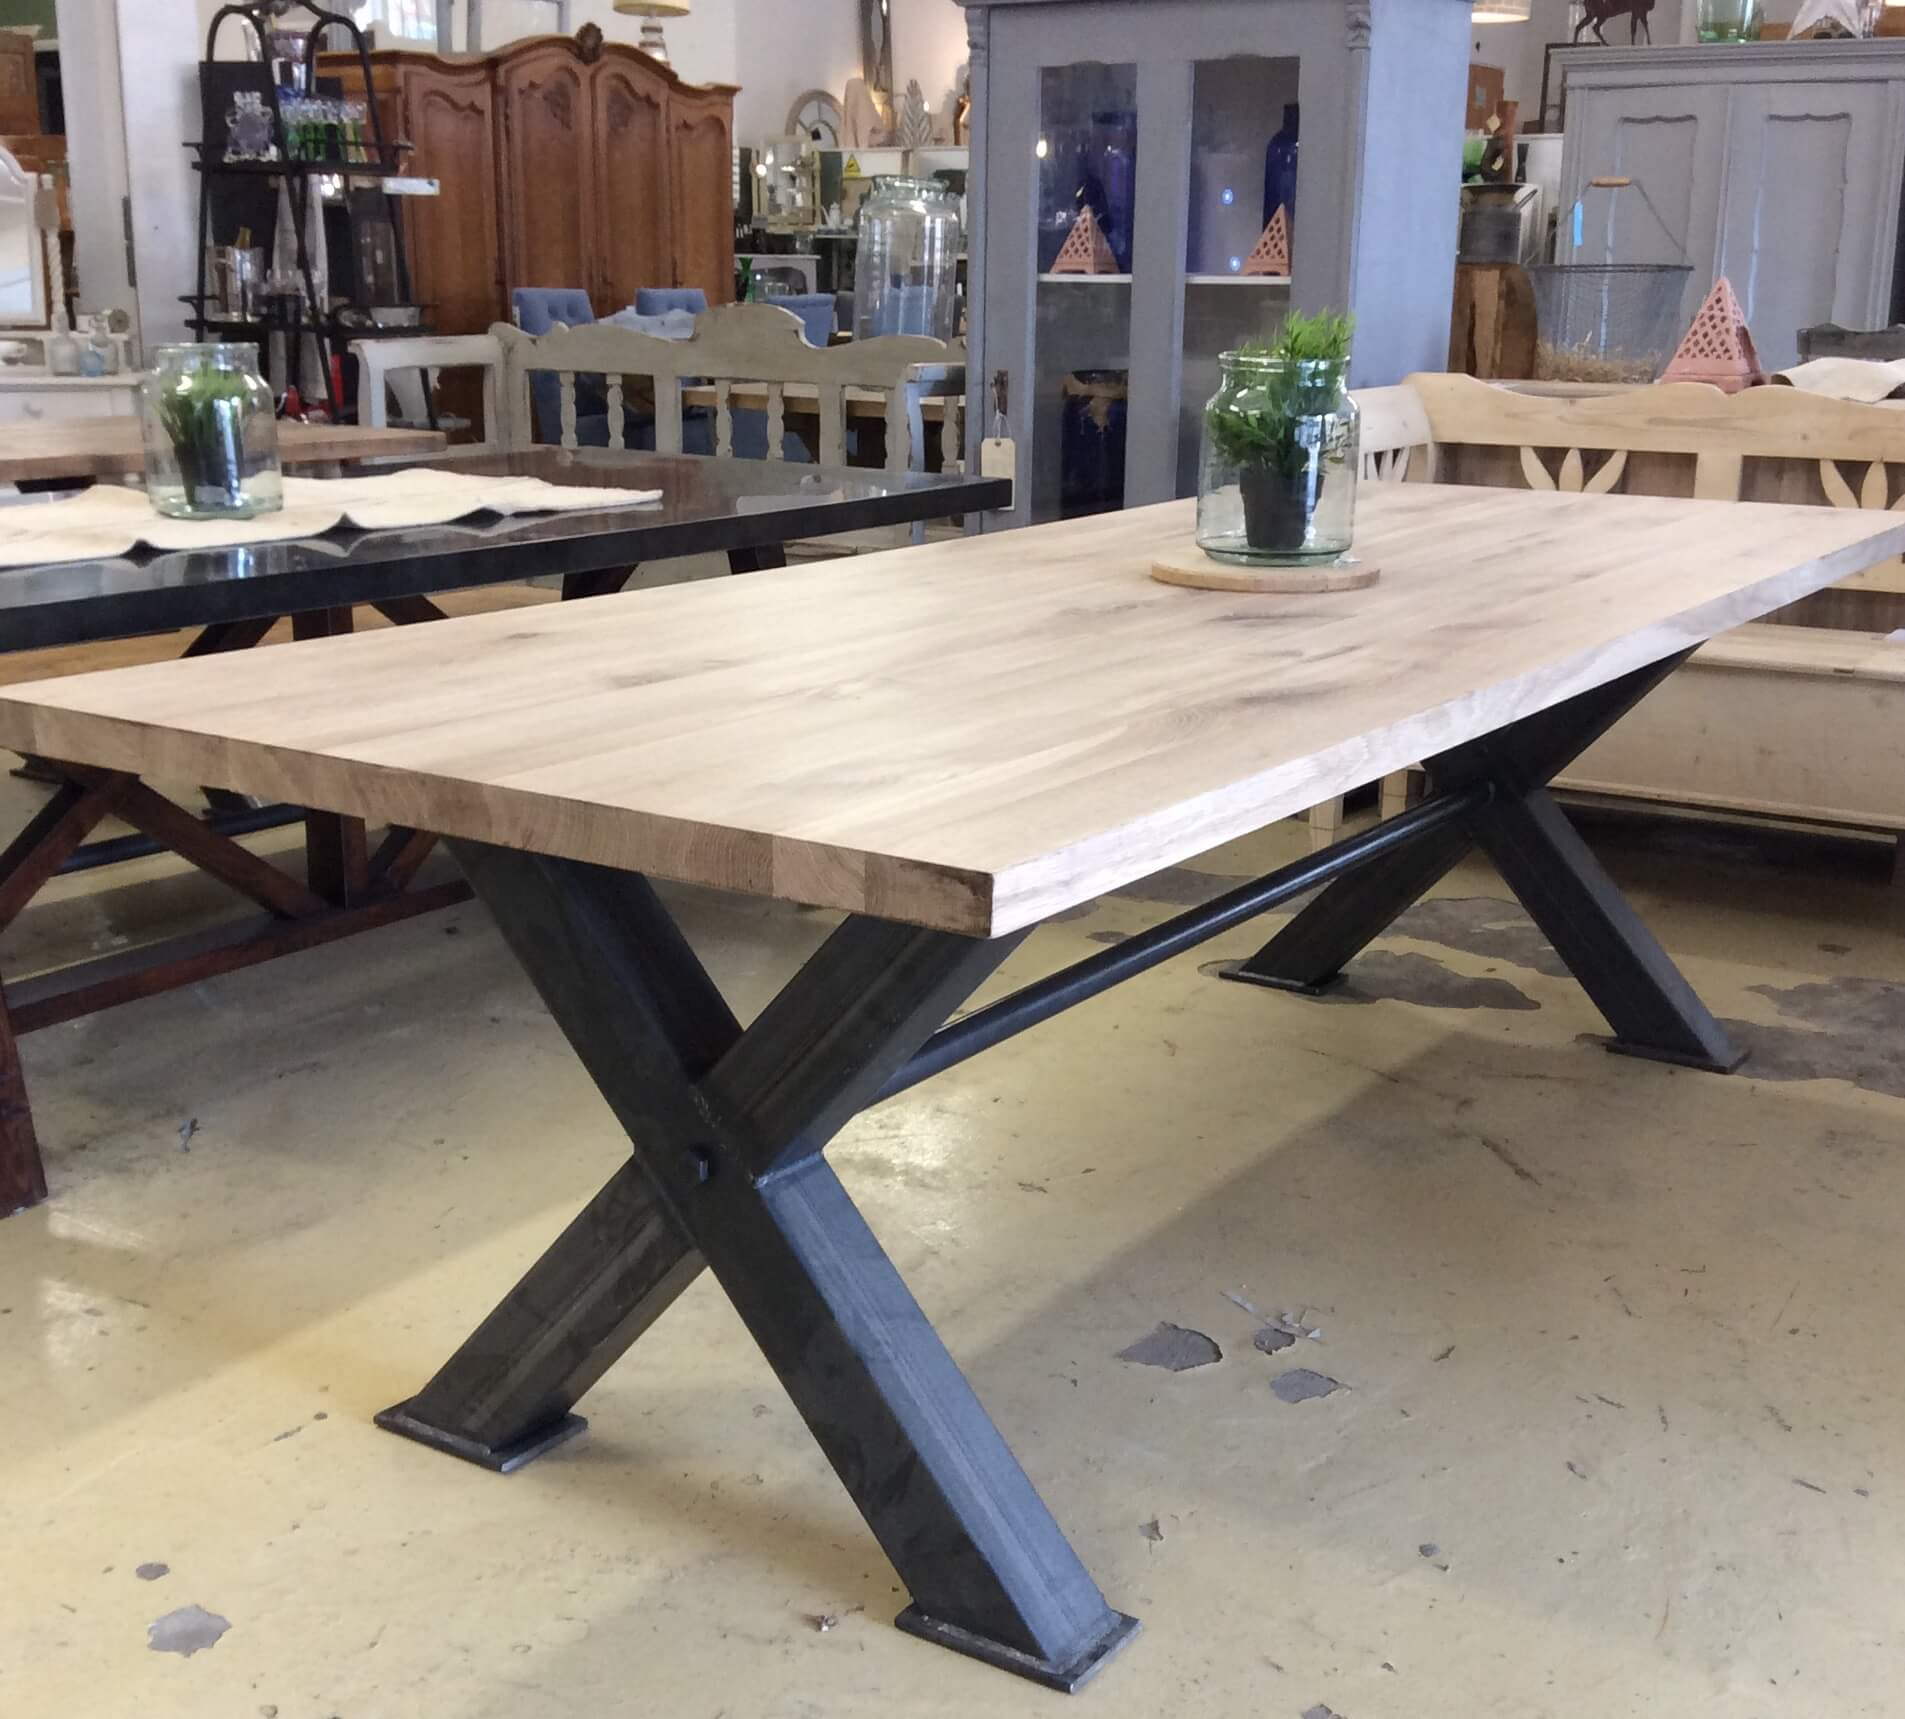 Bench Dining Vintage Industrial Bespoke Dining Table Bench: Table: Bespoke And Made To Order.